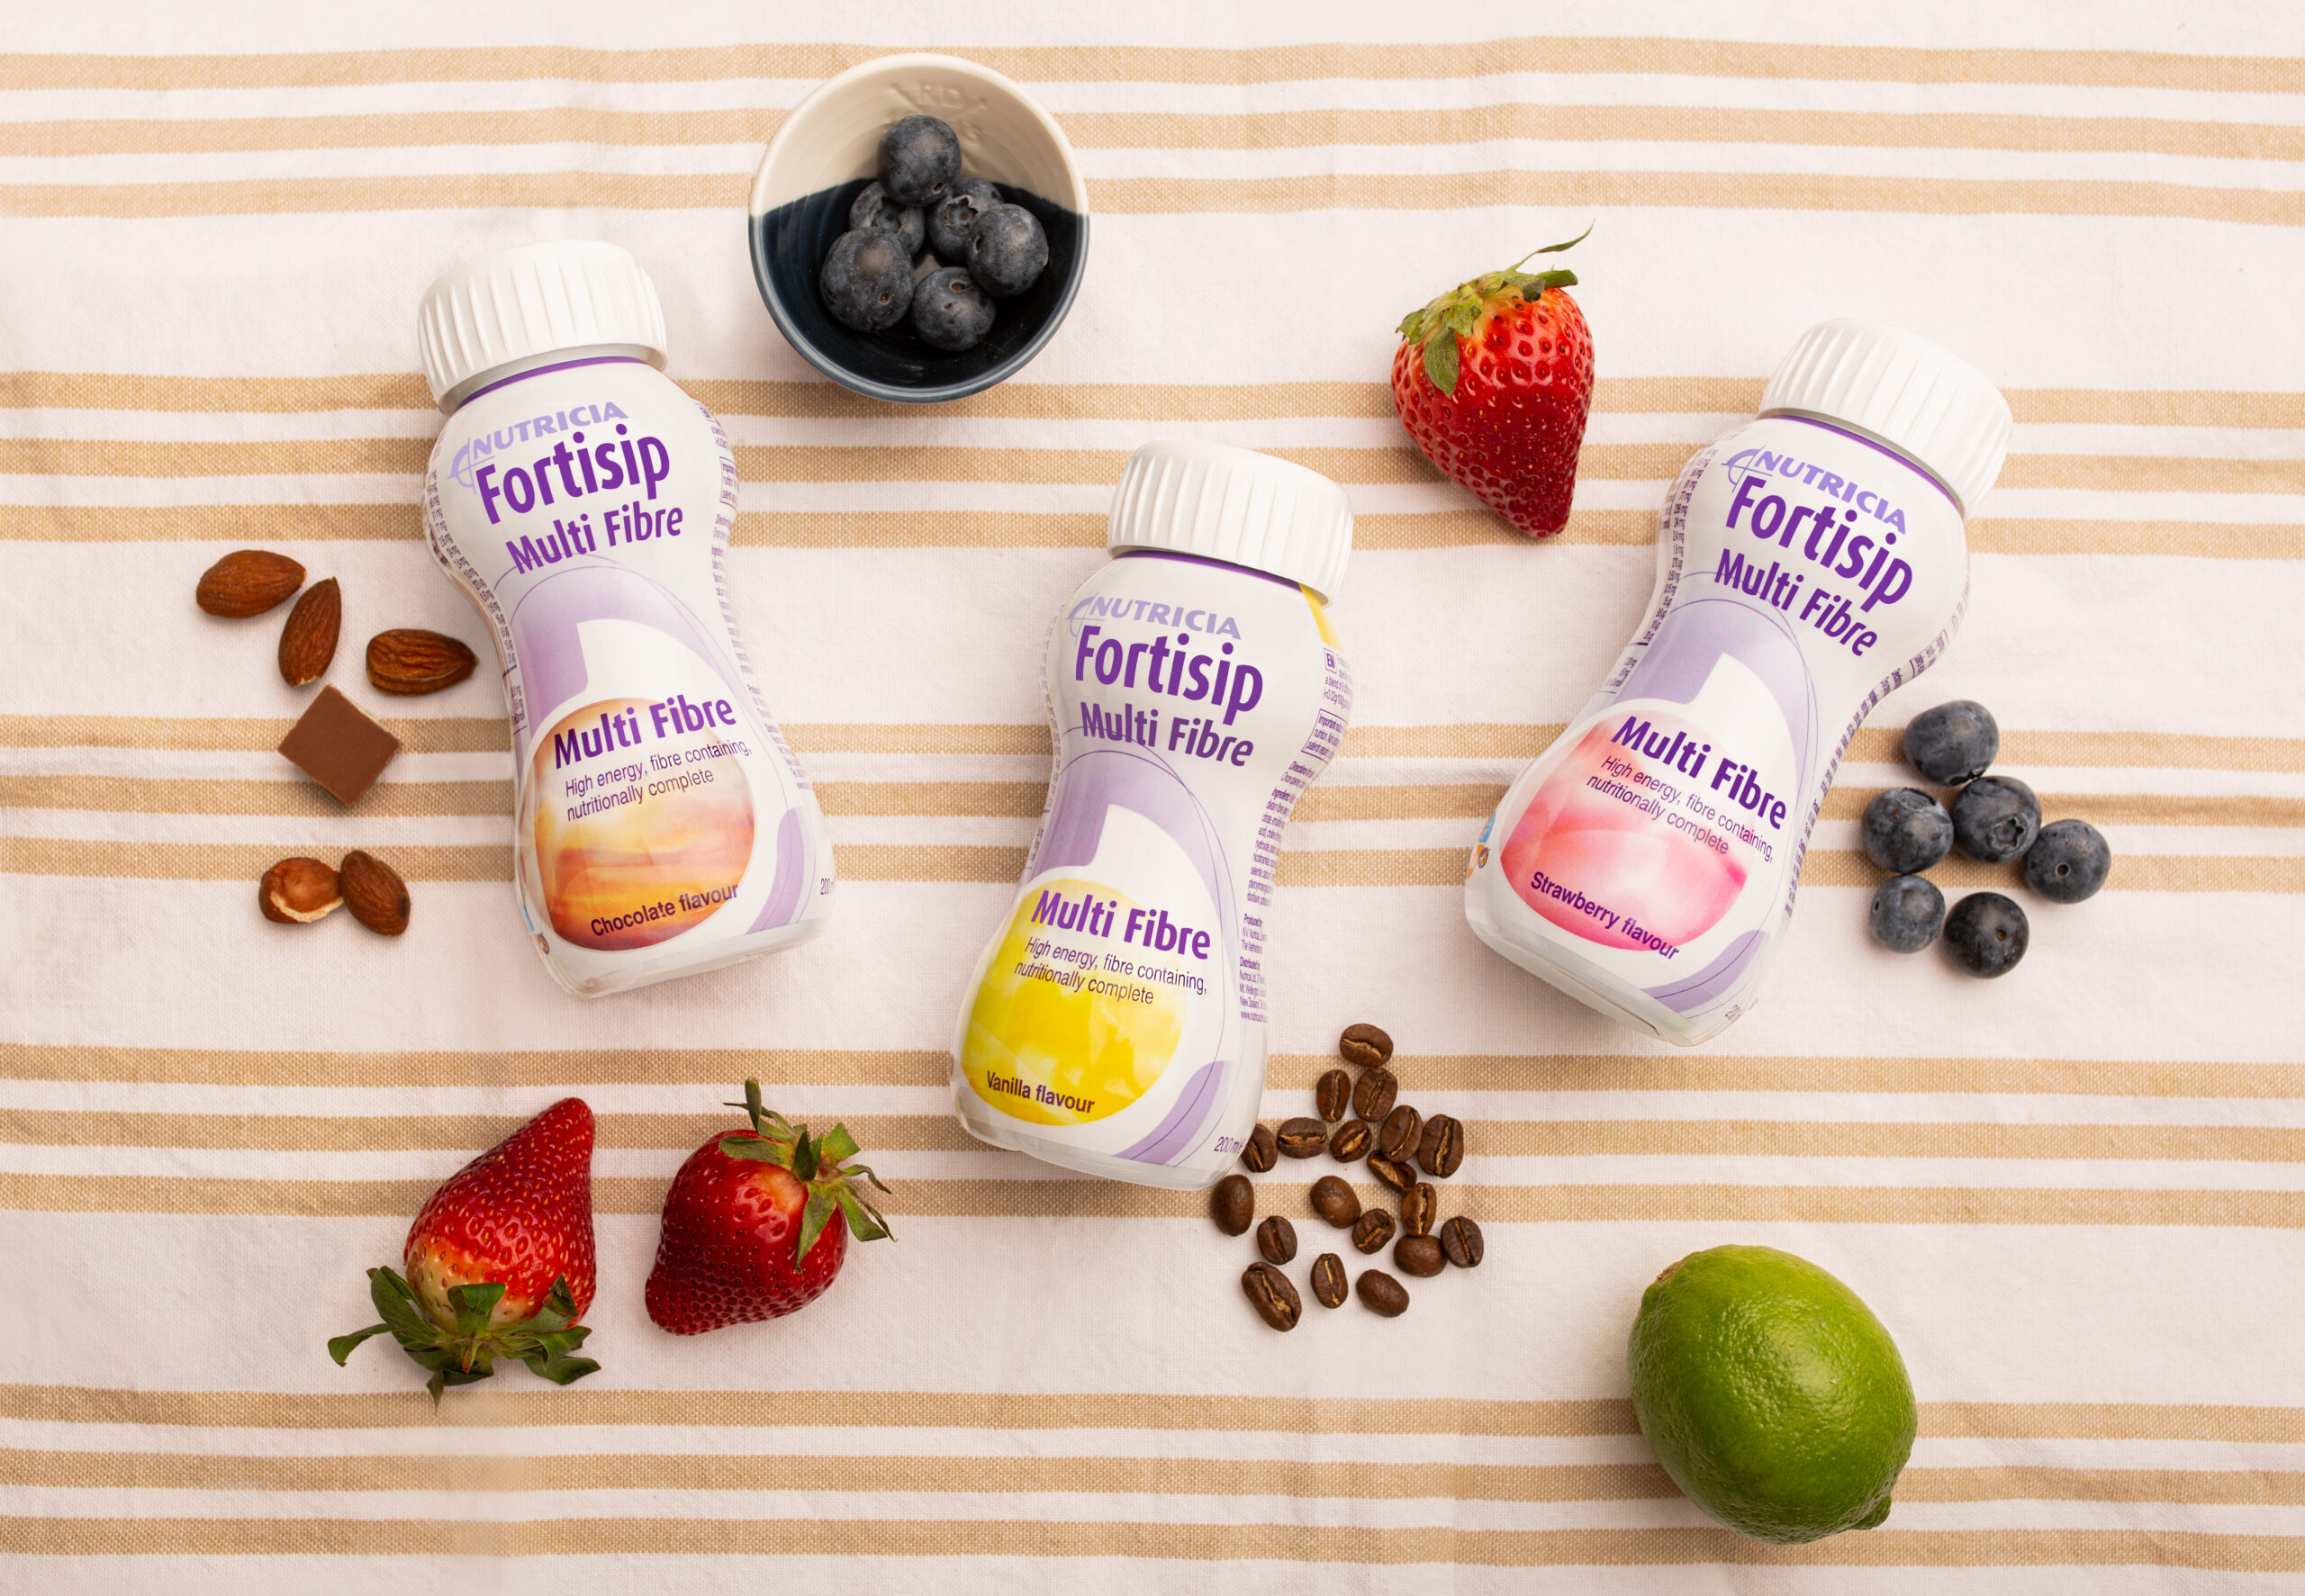 Delicious recipes using Fortisip Multi Fibre, a high energy, fibre enriched, oral nutritional supplement.